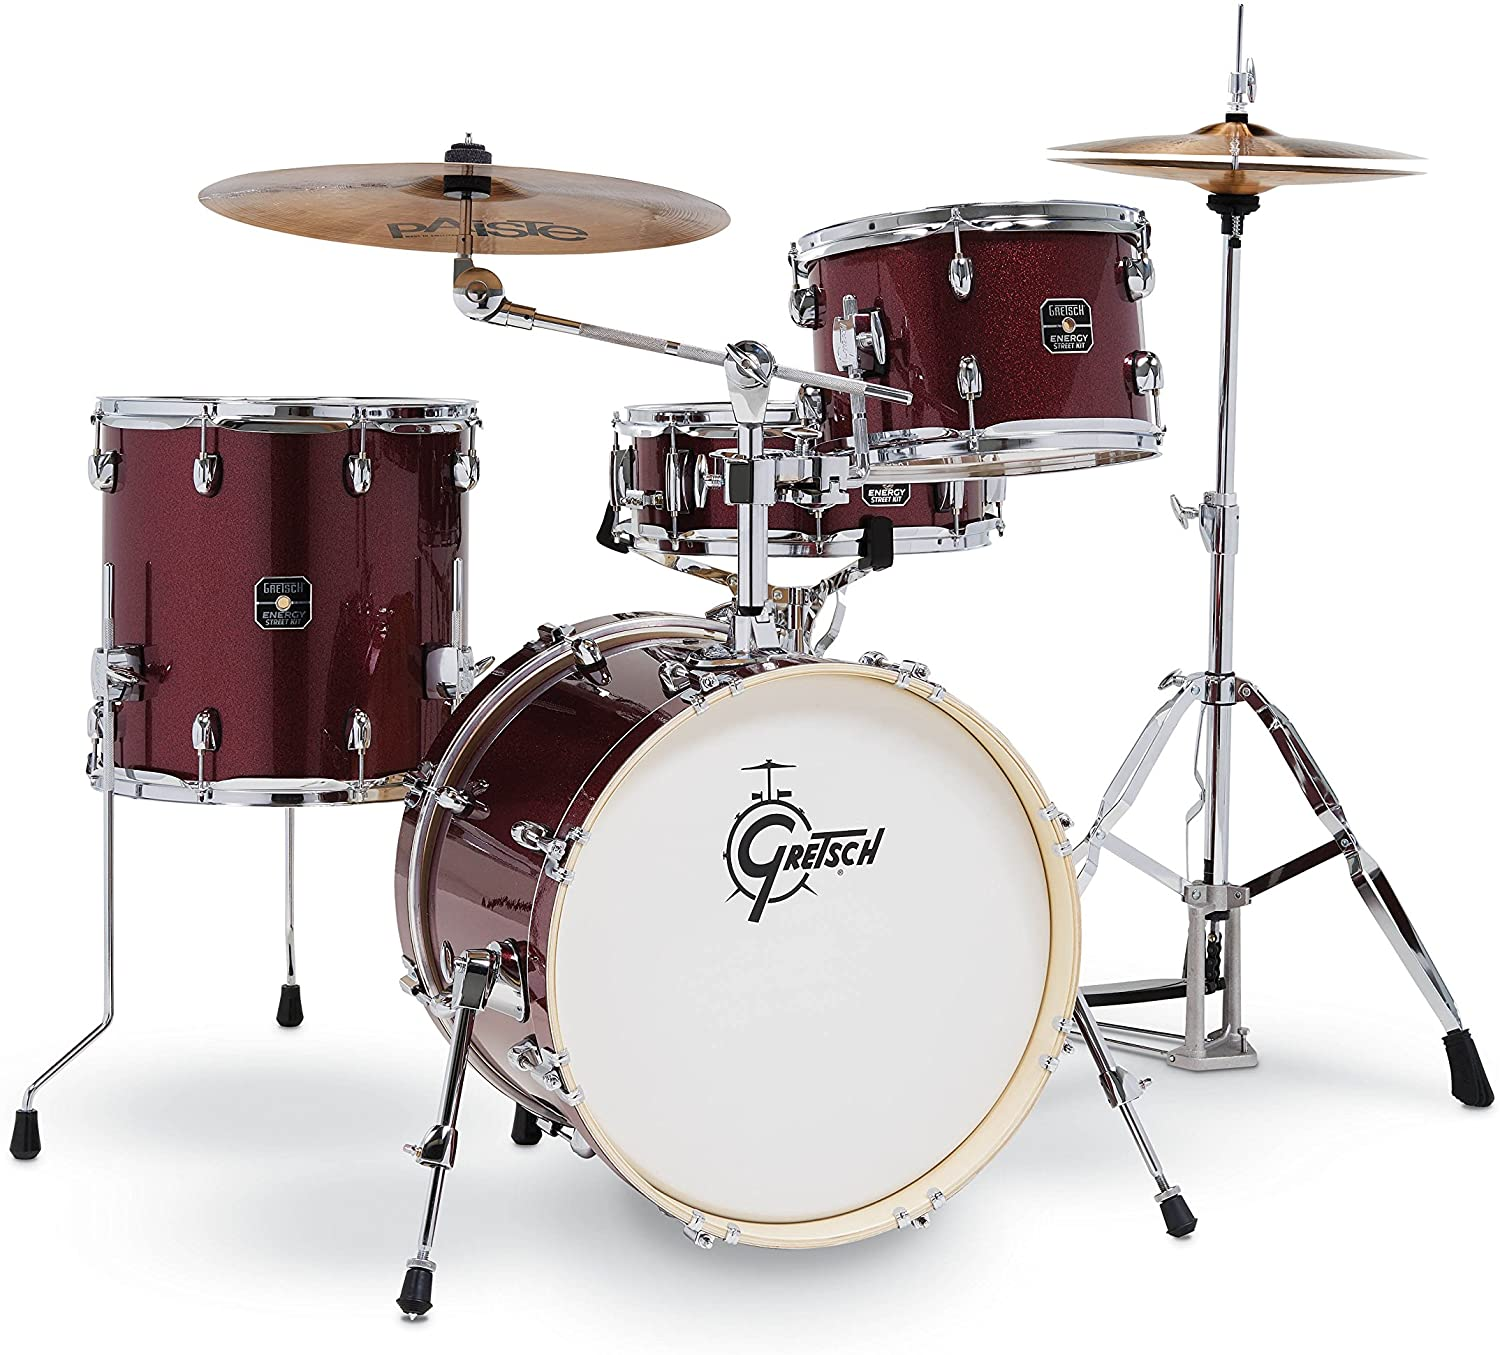 Gretsch Energy 4 Piece Street Kit With Hardware (18/12/14/14SN) Ruby Sparkle